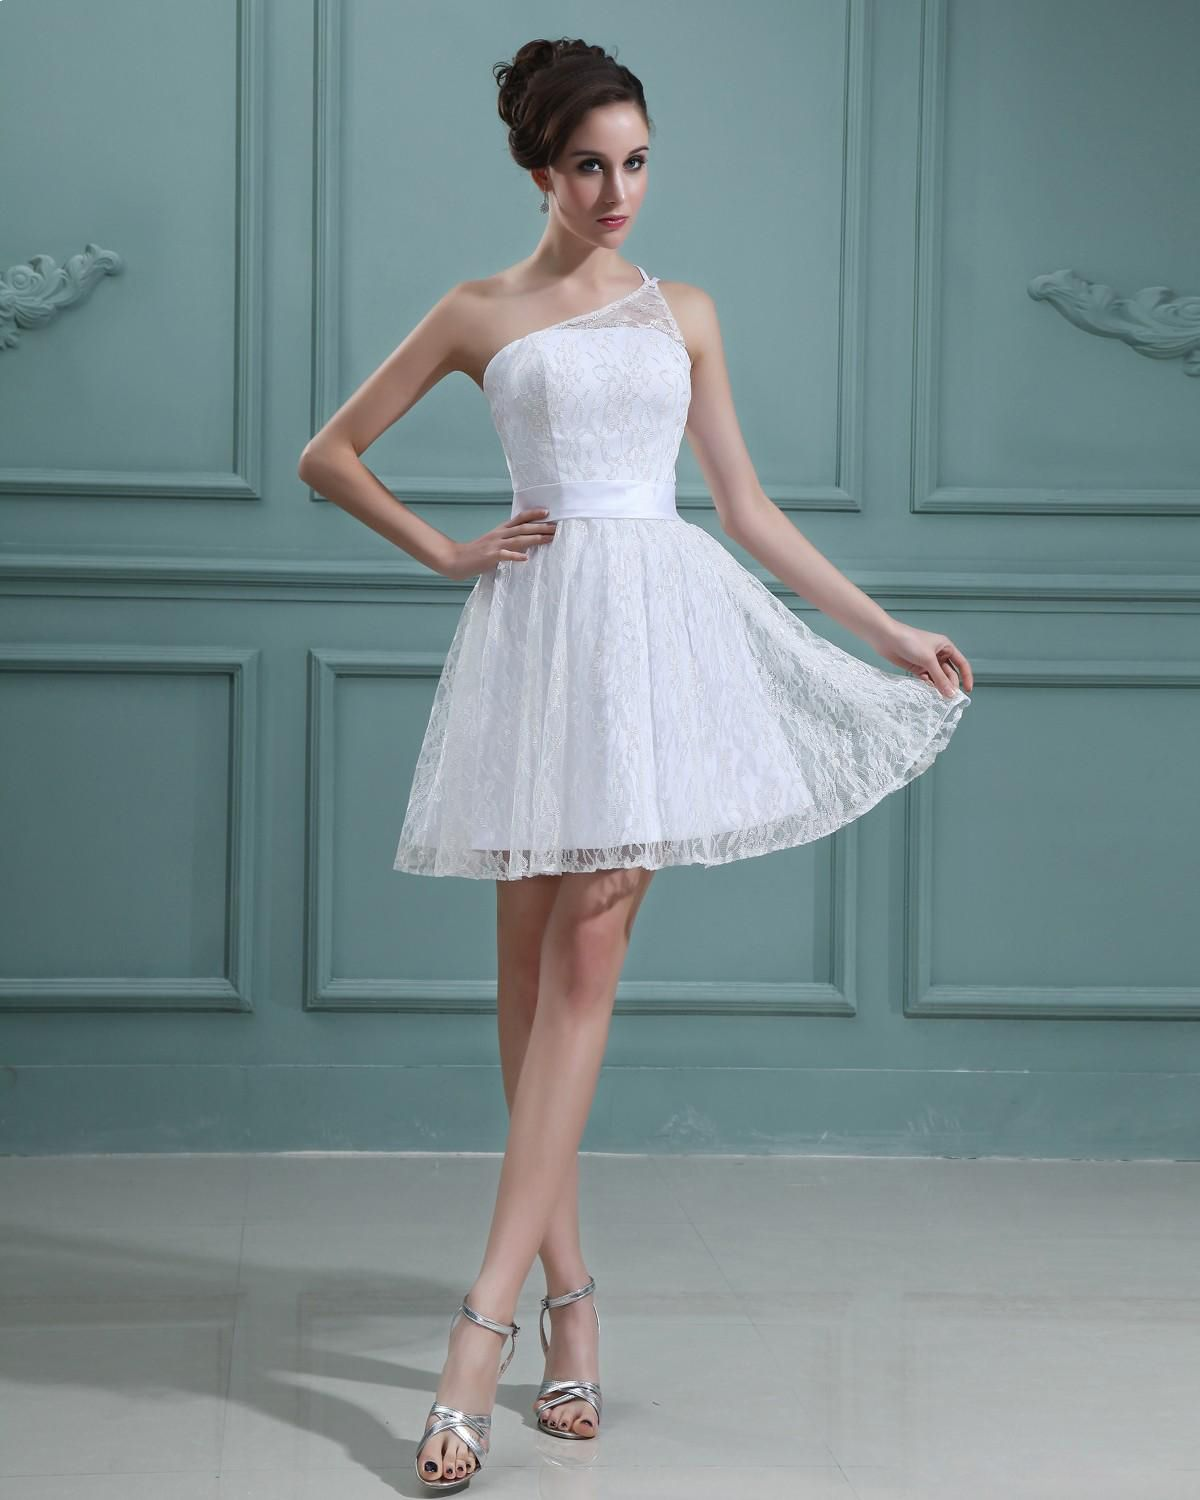 One Shoulder Sleeveless Lace Short Mini Wedding Dress A-line ...